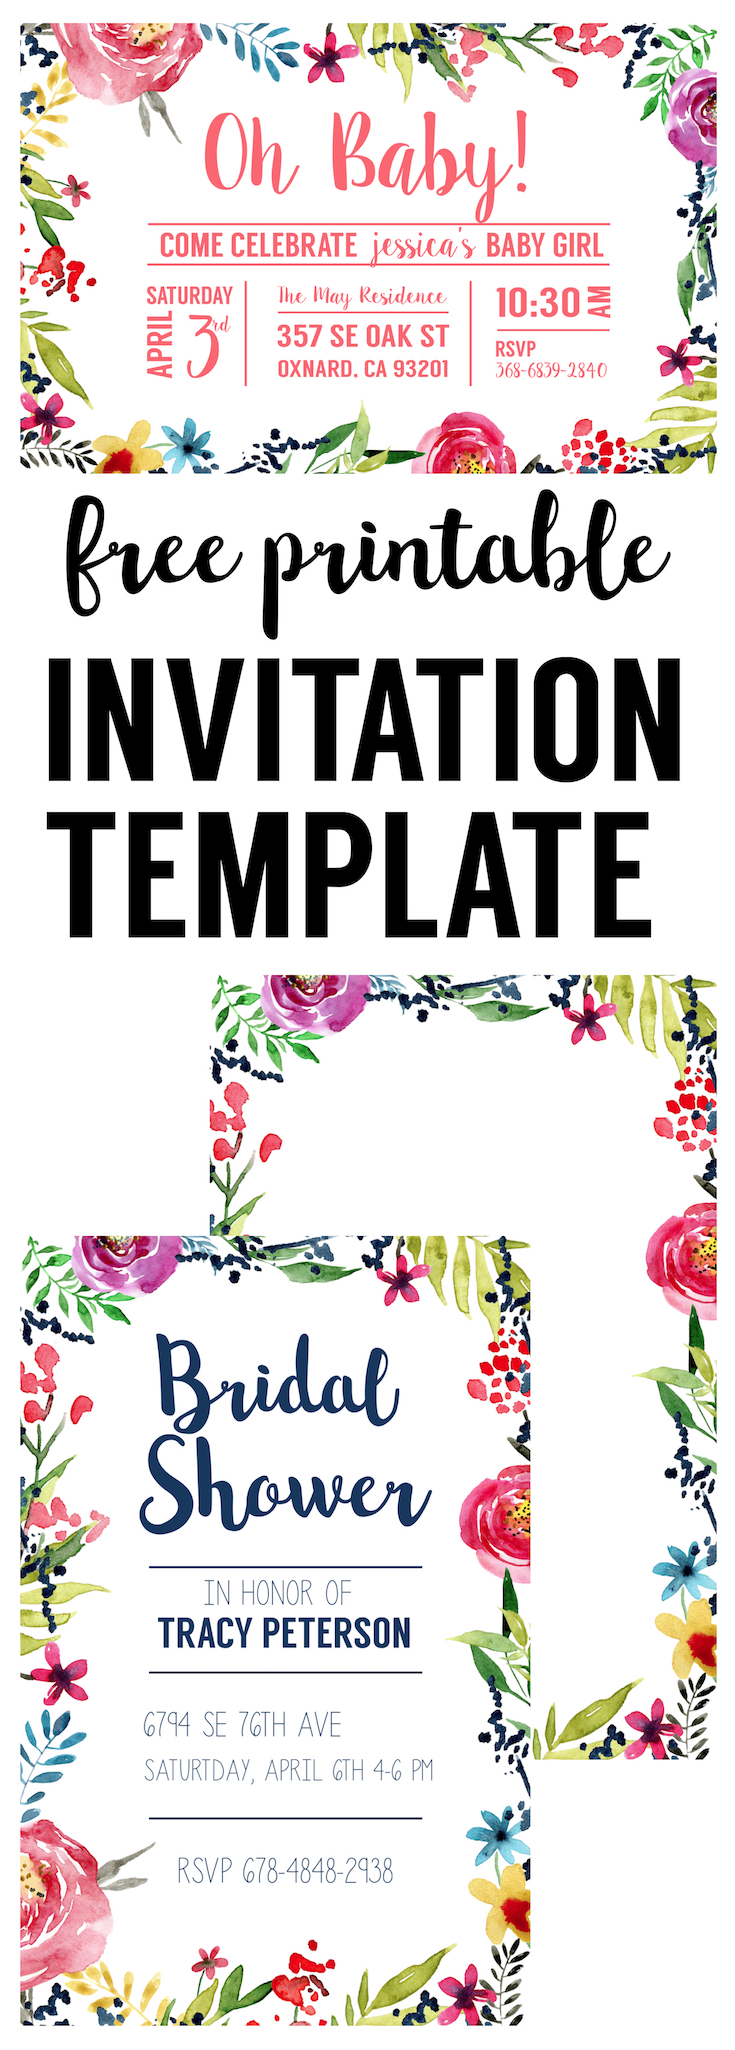 floral borders invitations free printable invitation templates great diy free watercolor flower invitation templates